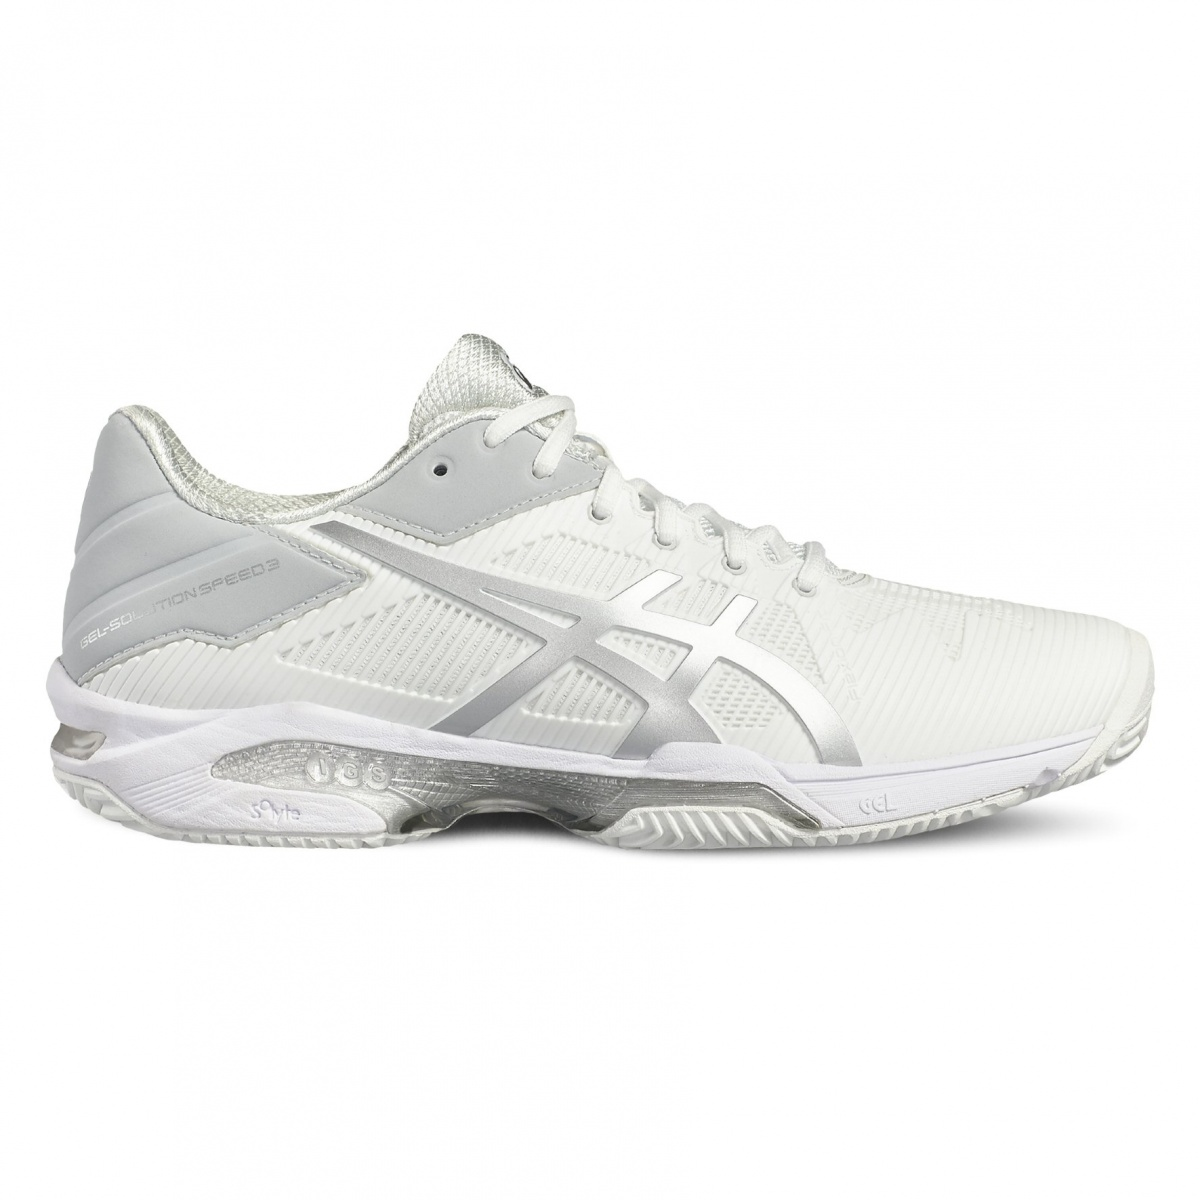 Asics Gel Solution Speed 3 Clay 2017 weiss/silber Tennisschuhe Damen ...